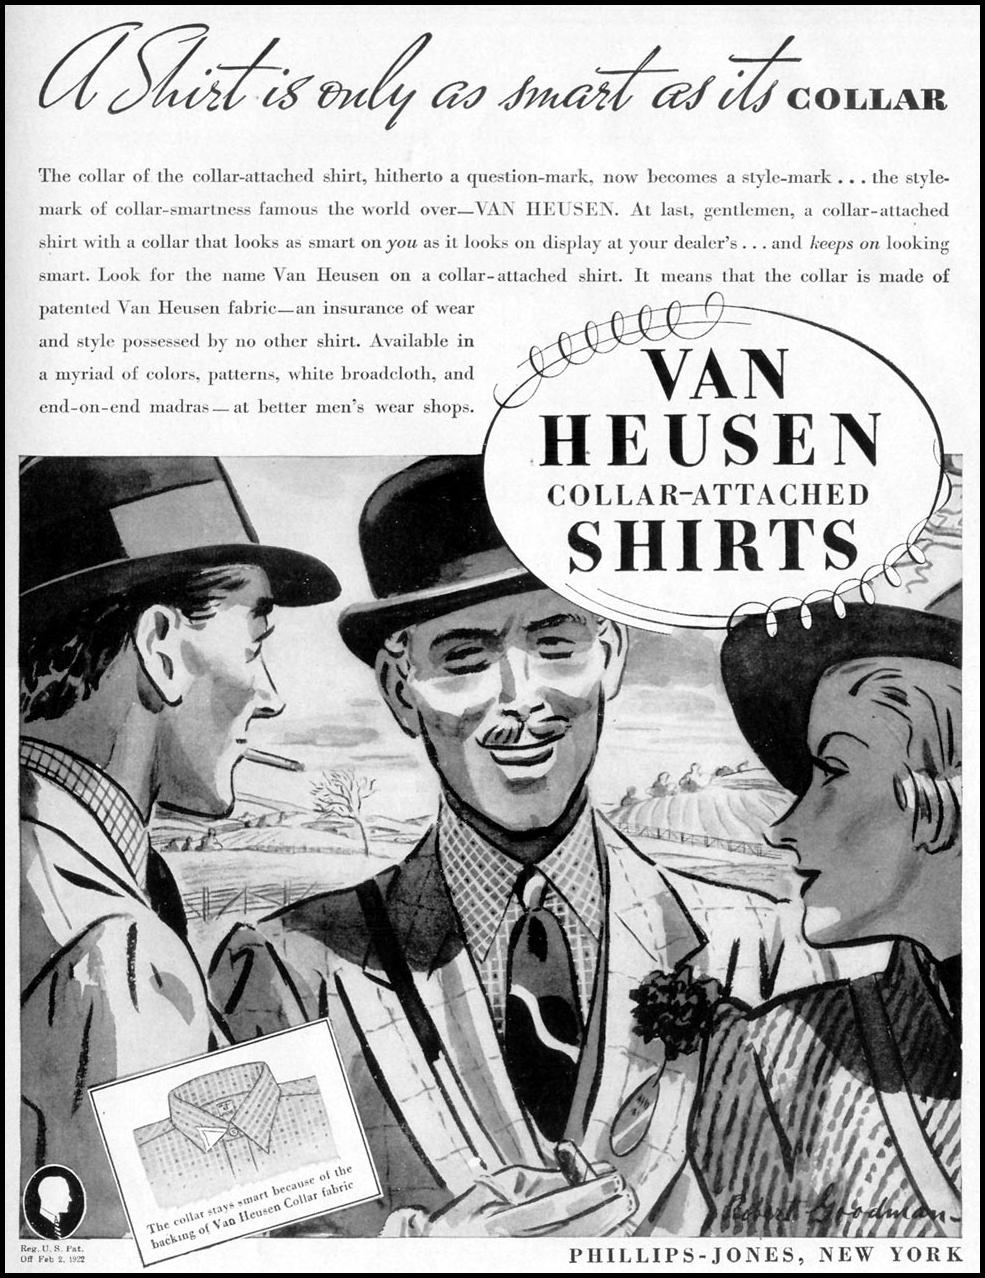 VAN HEUSEN COLLAR-ATTACHED SHIRTS LIFE 09/06/1937 p. 97